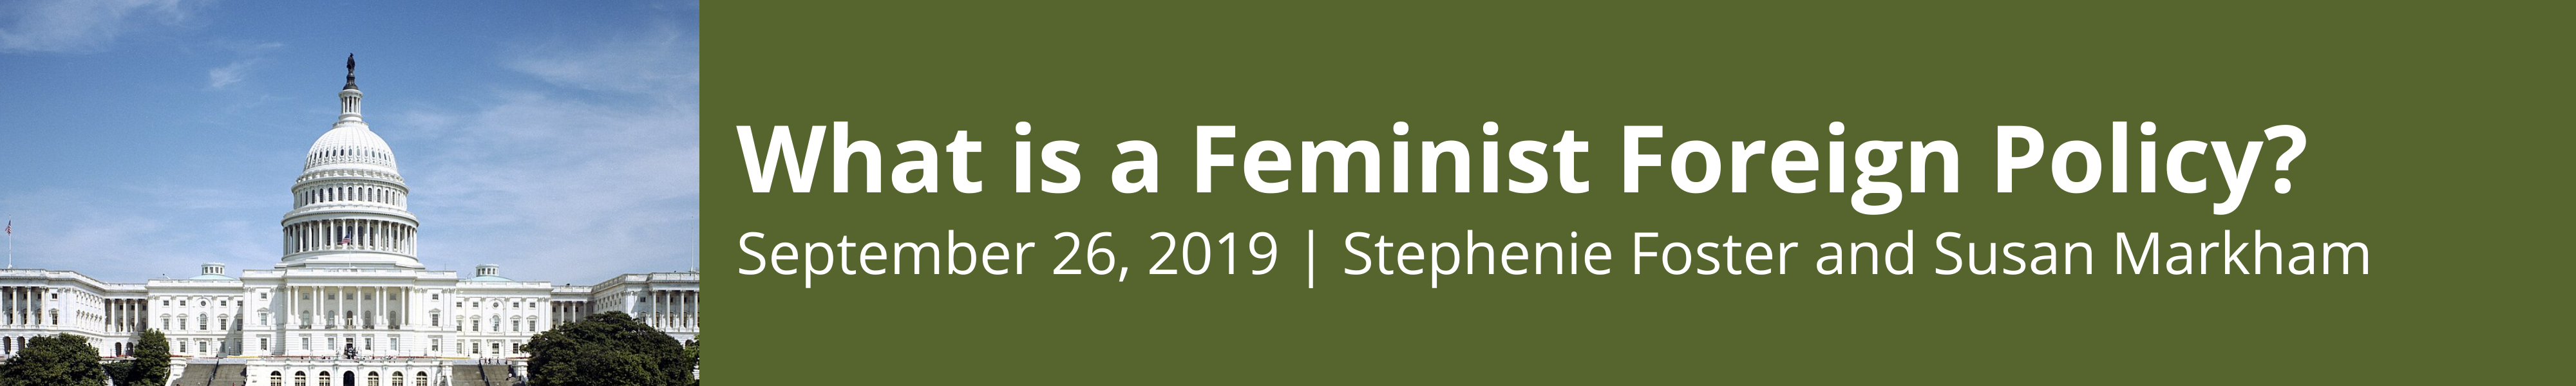 What is a Feminist Foreign Policy?: September 26, 2019, Stephenie Foster and Susan Markham